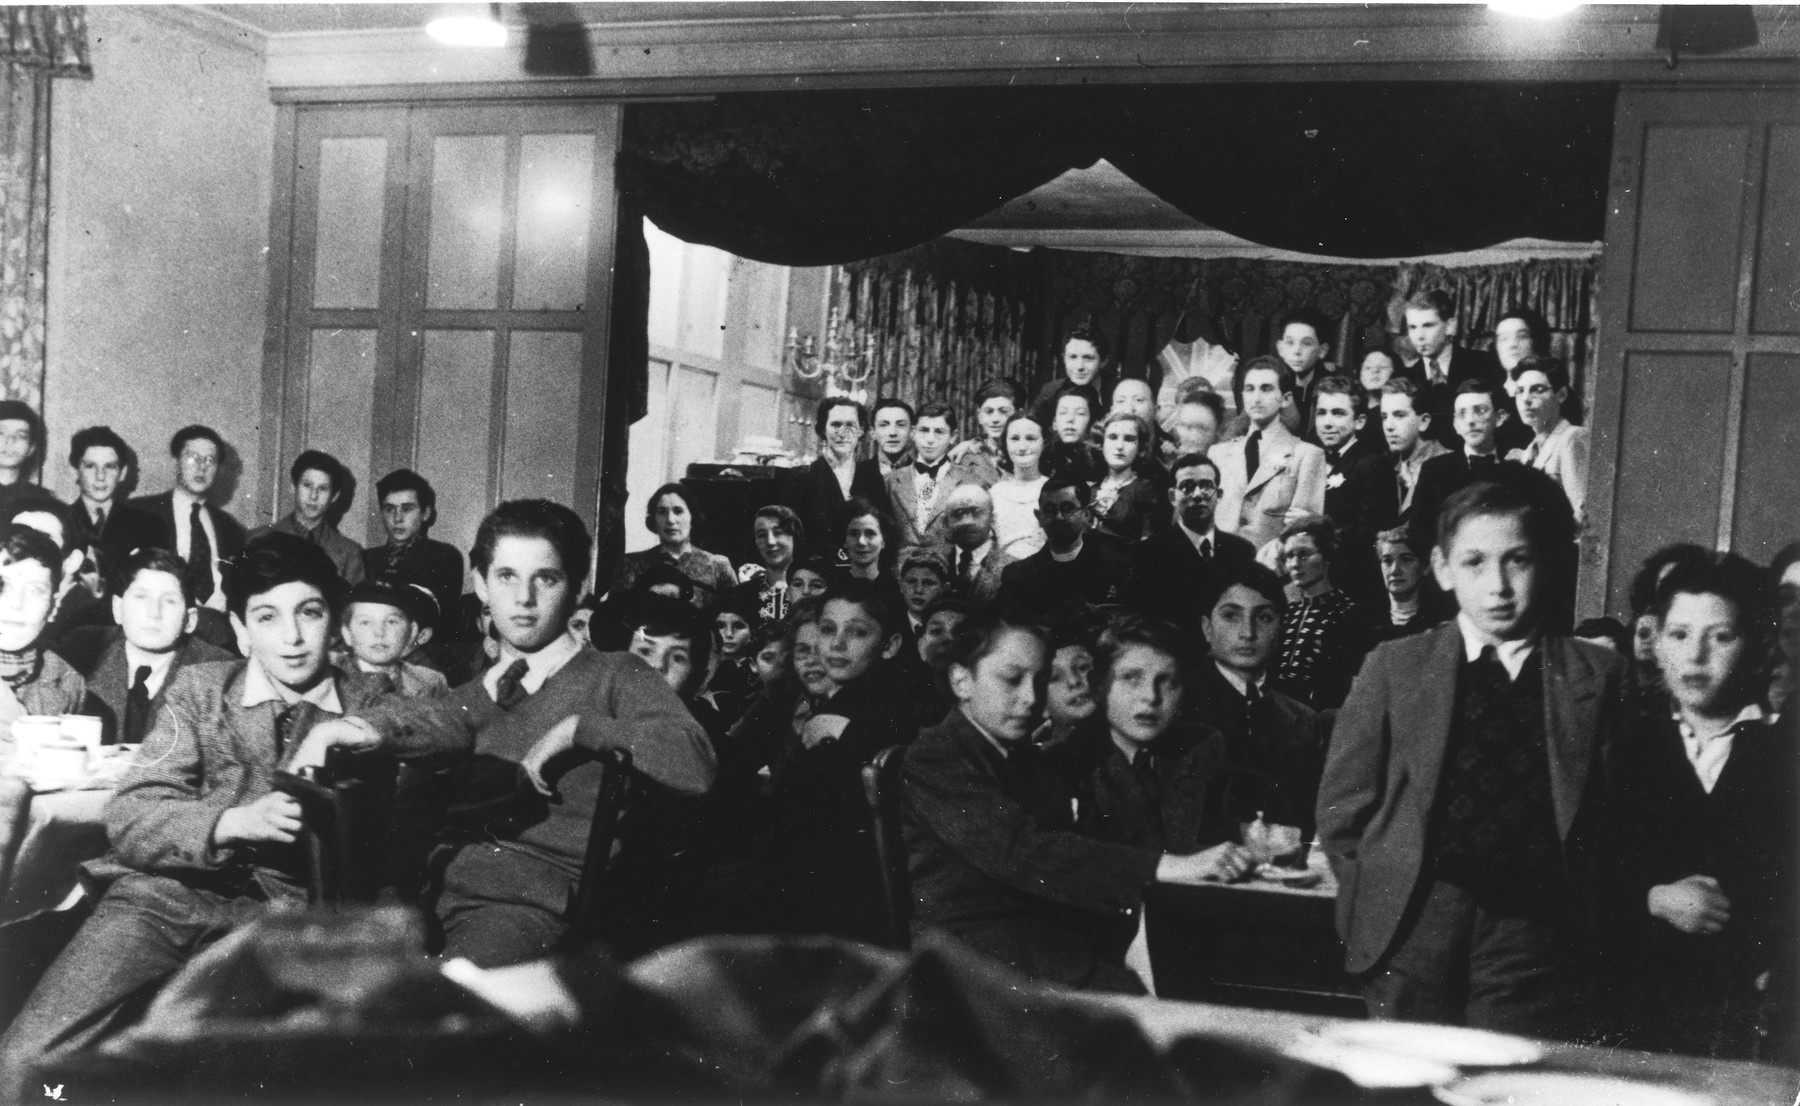 Jewish children from the Rowden Hall School attend a Hannukah party in an overflow hostel on Harold Road.  Among those pictured are Guenther Cahn, his brother Helmuth Cahn (later Harry Curtis), Eric Hamburger, Kurt Berger ( a teacher recruited from the internees in the Kitchener Camp), Mr. and Mrs. Katz and Mrs. Bergel.